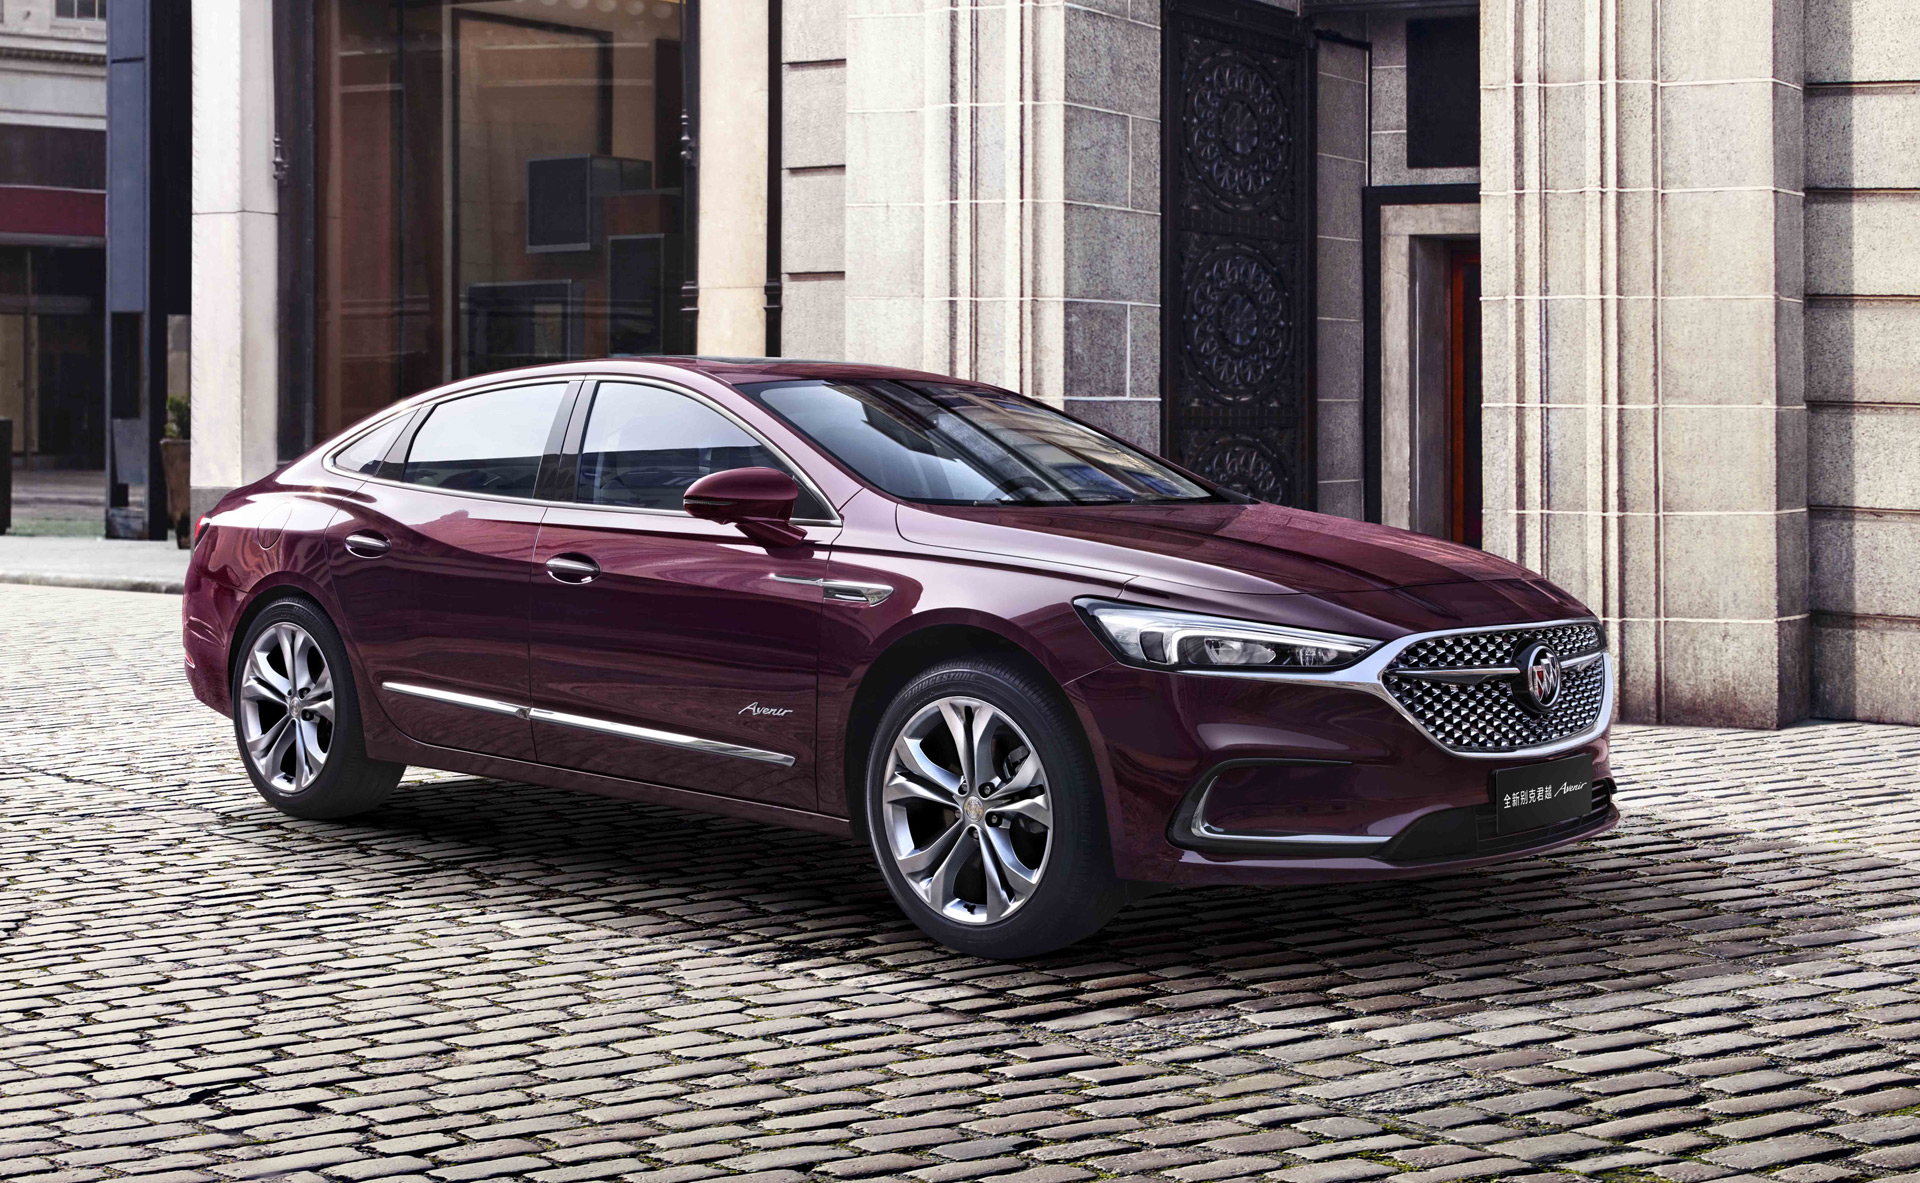 2020 Buick Lacrosse Made Handsome Just As It's Dropped In Us Cost Of A New 2021 Buick Lacrosse